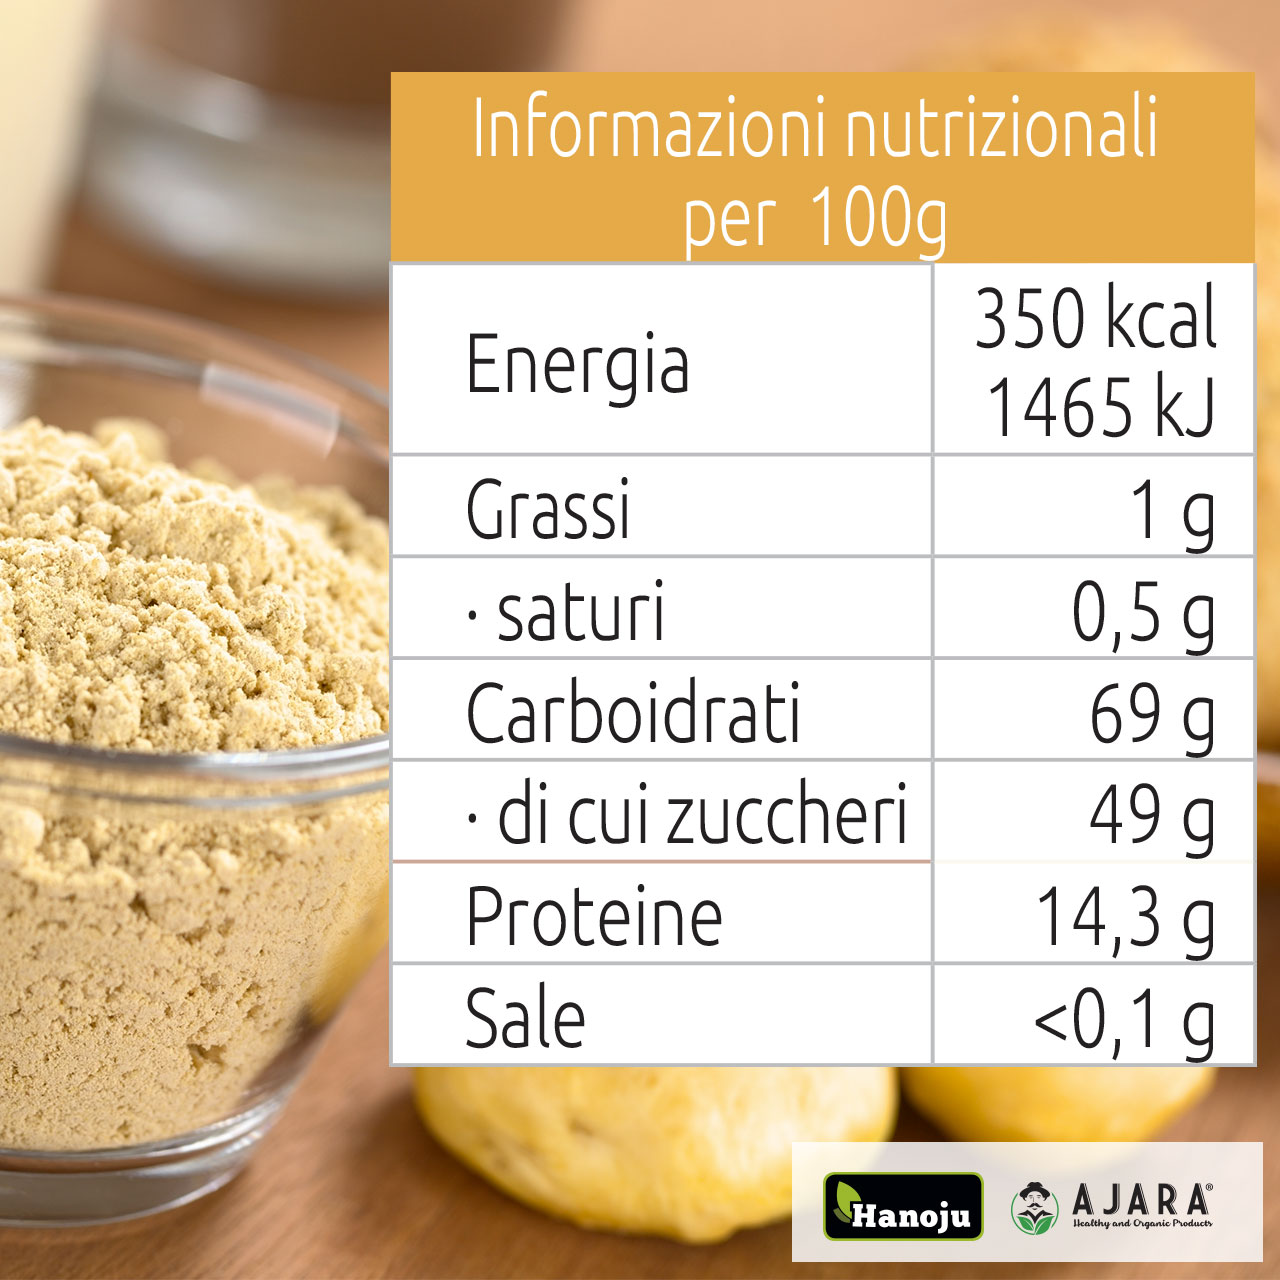 Maca powder properties